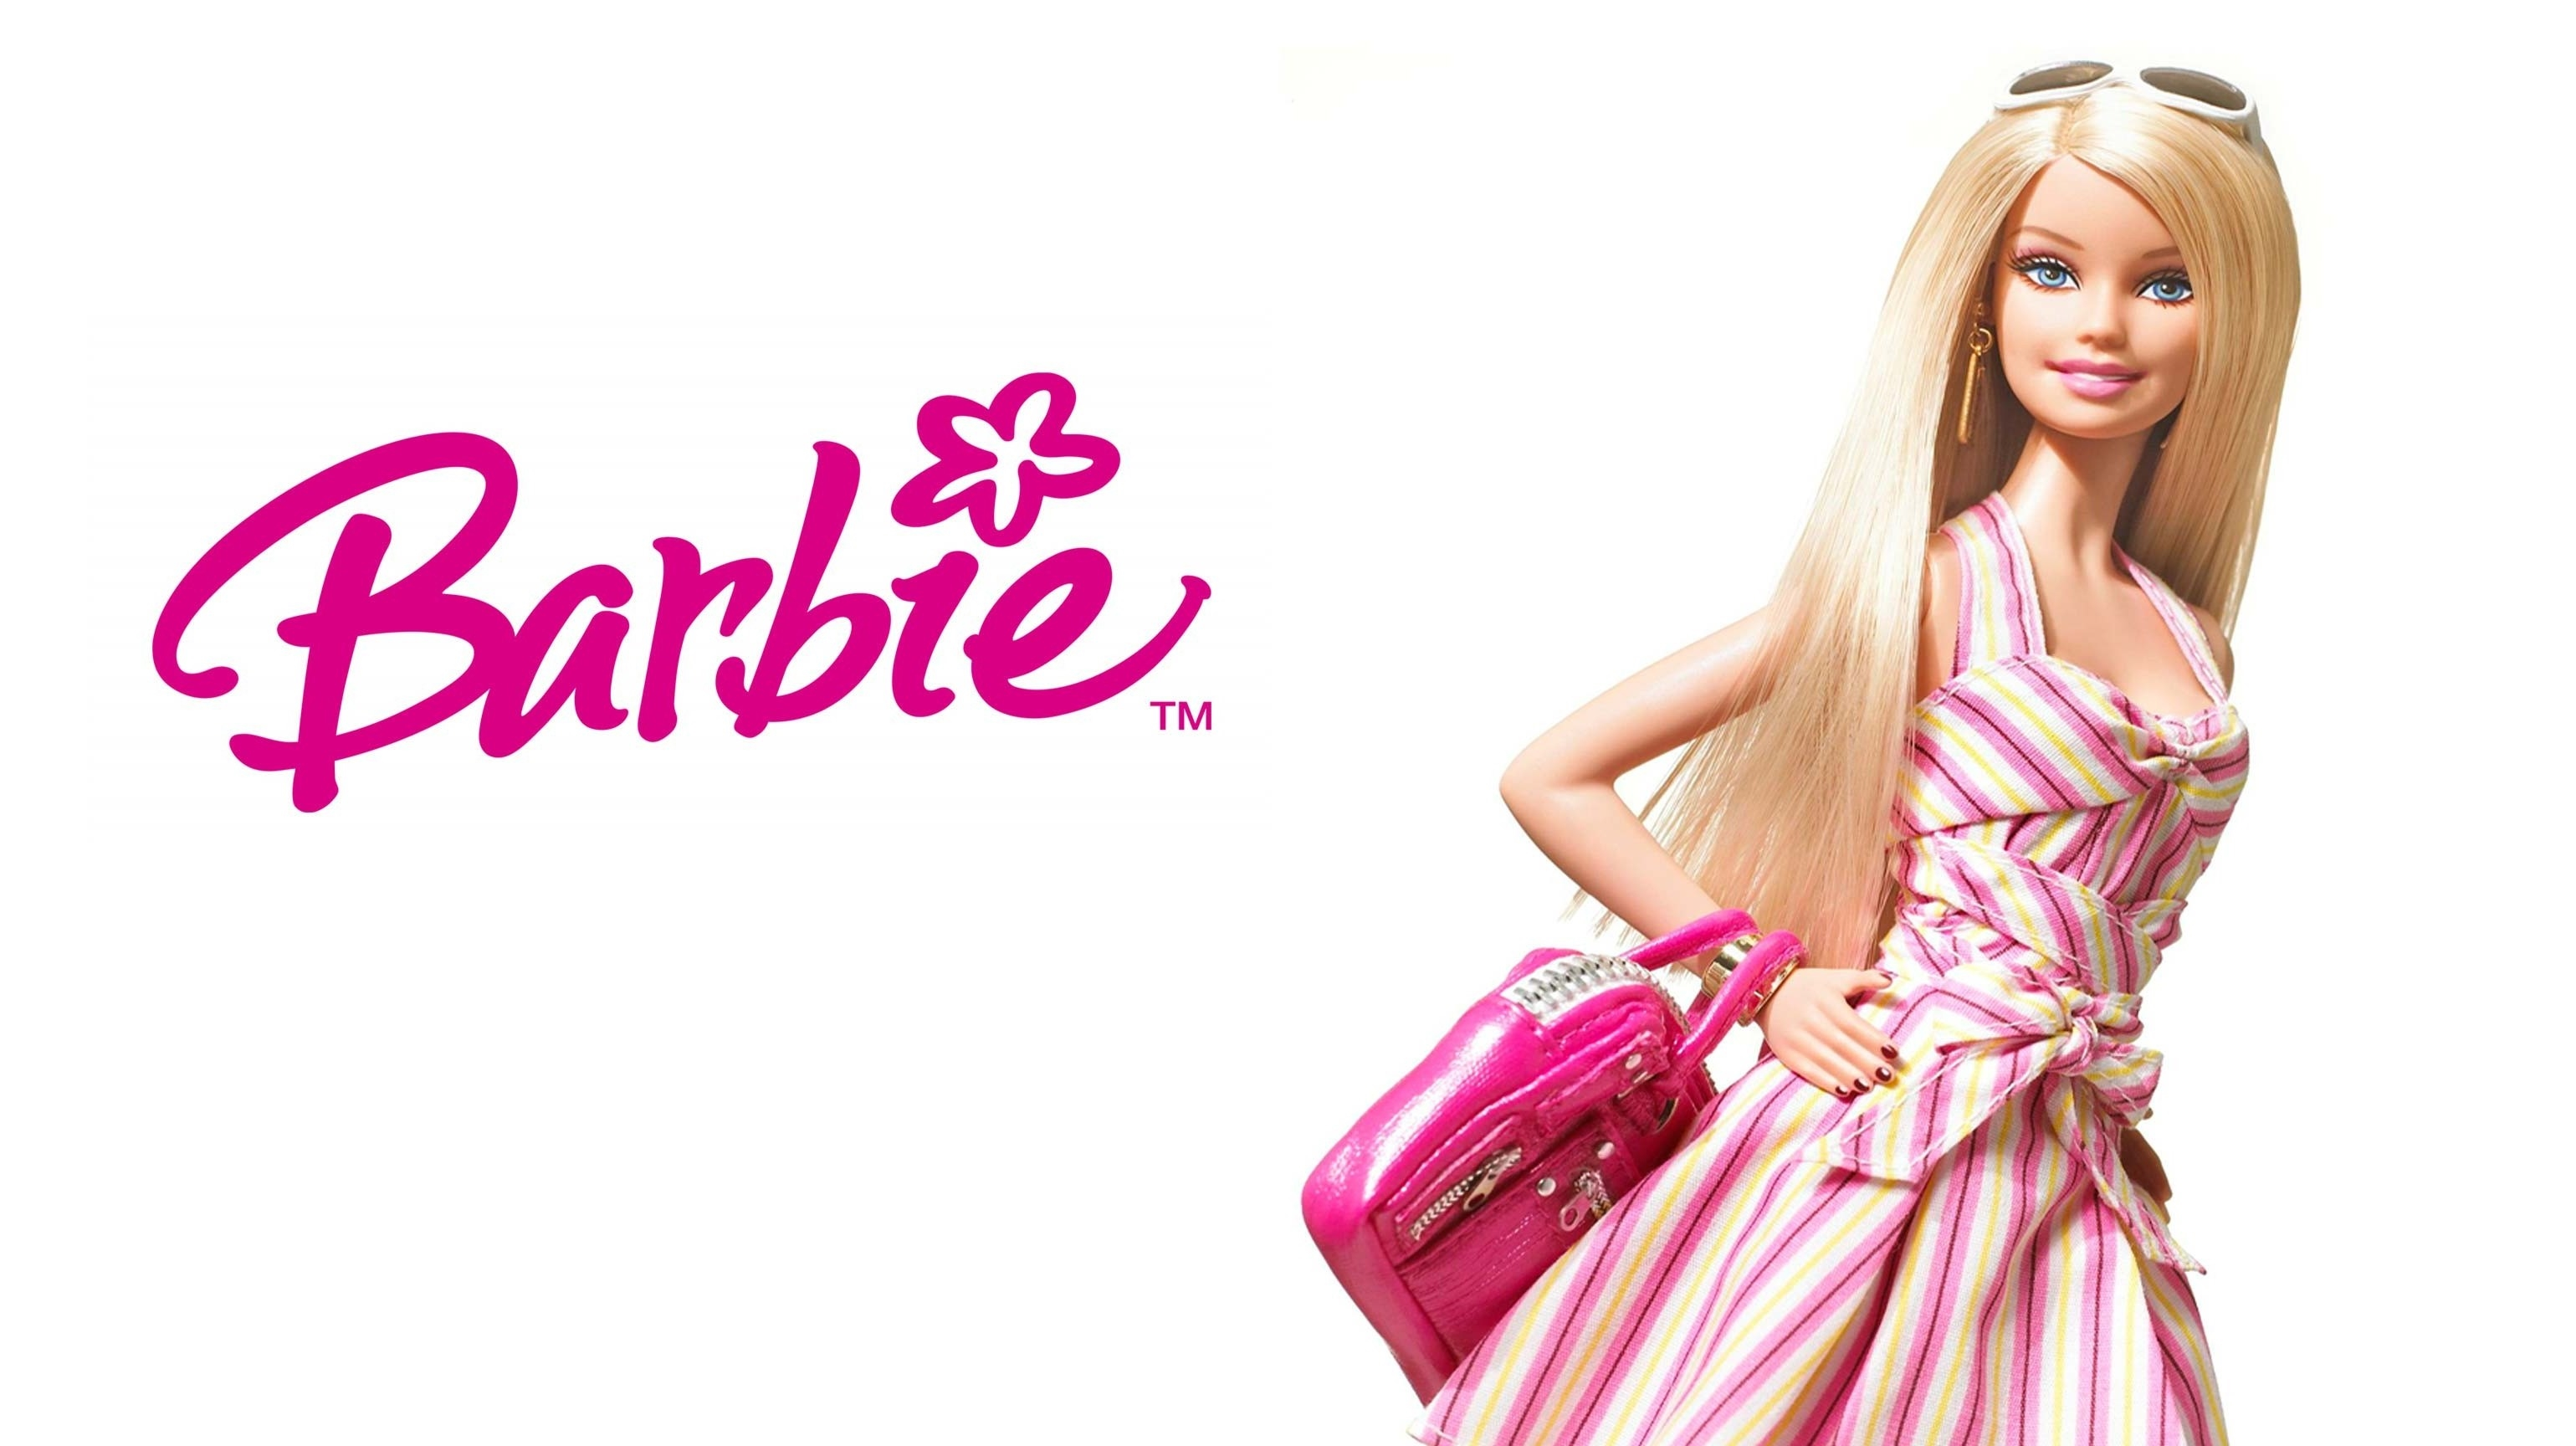 barbie wallpapers cartoons disney free